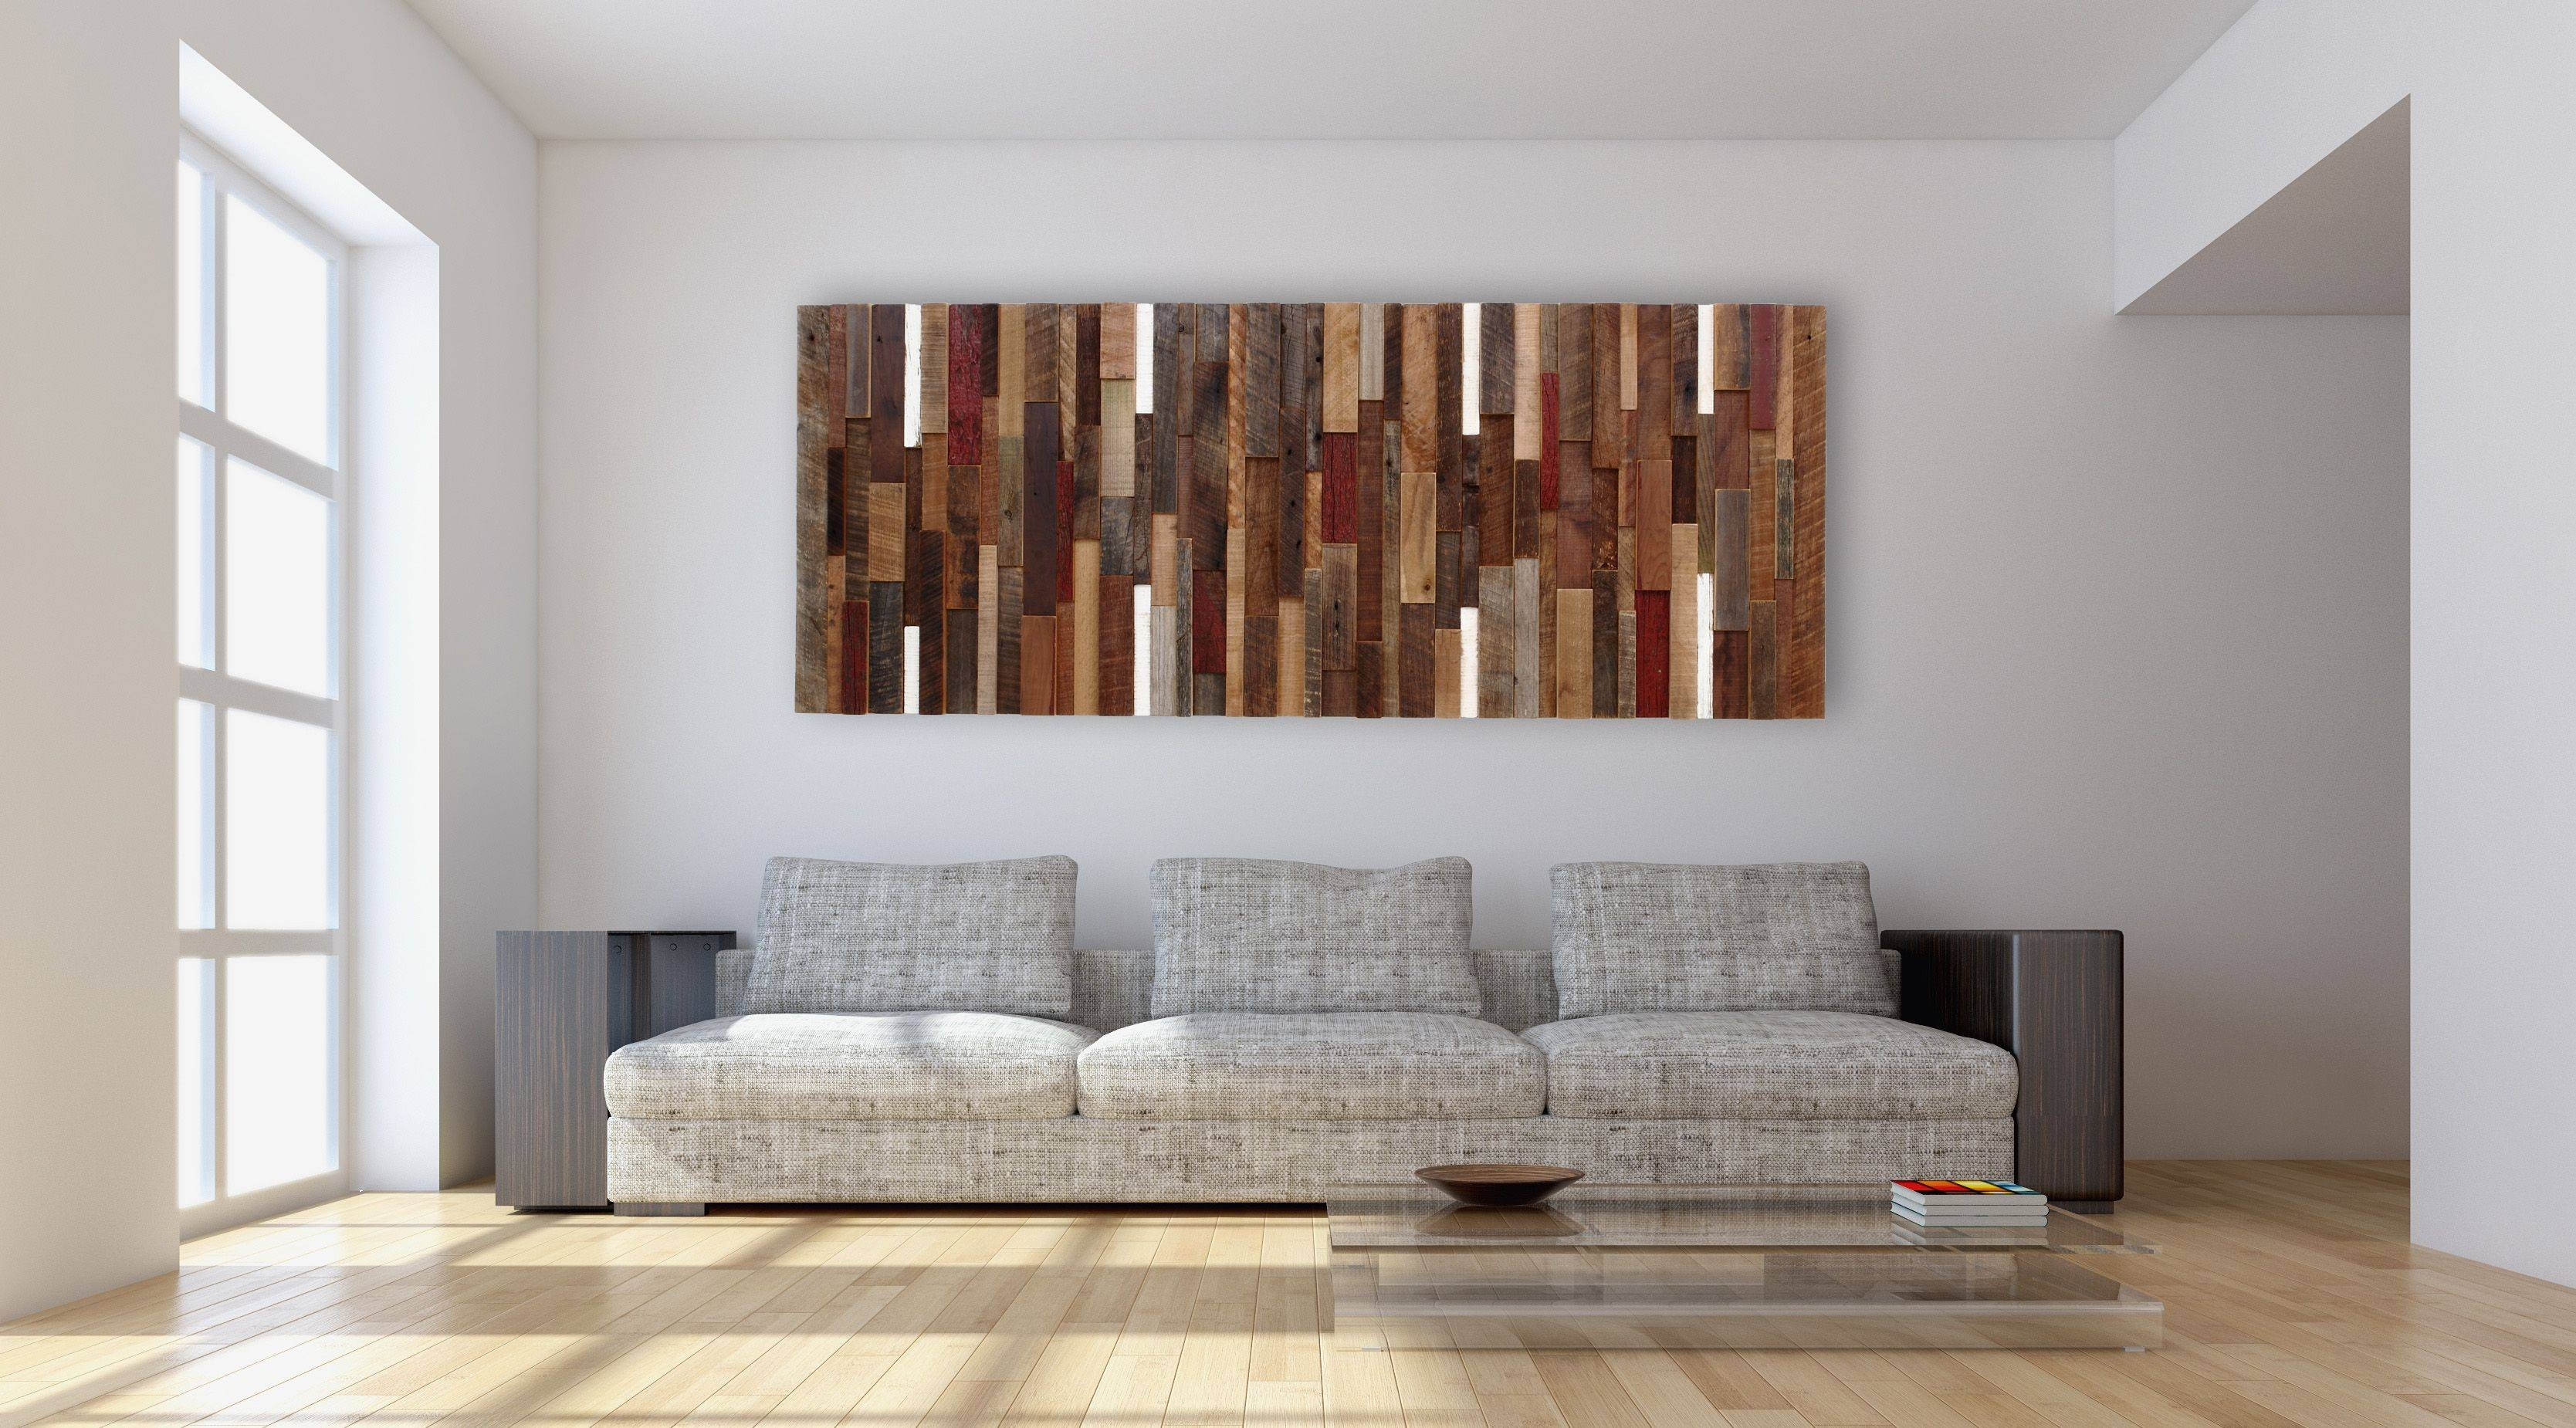 Hand Made Reclaimed Wood Wall Art, Made Intirely Of Reclaimed Barn Intended For Most Current Wood Wall Art (Gallery 20 of 25)